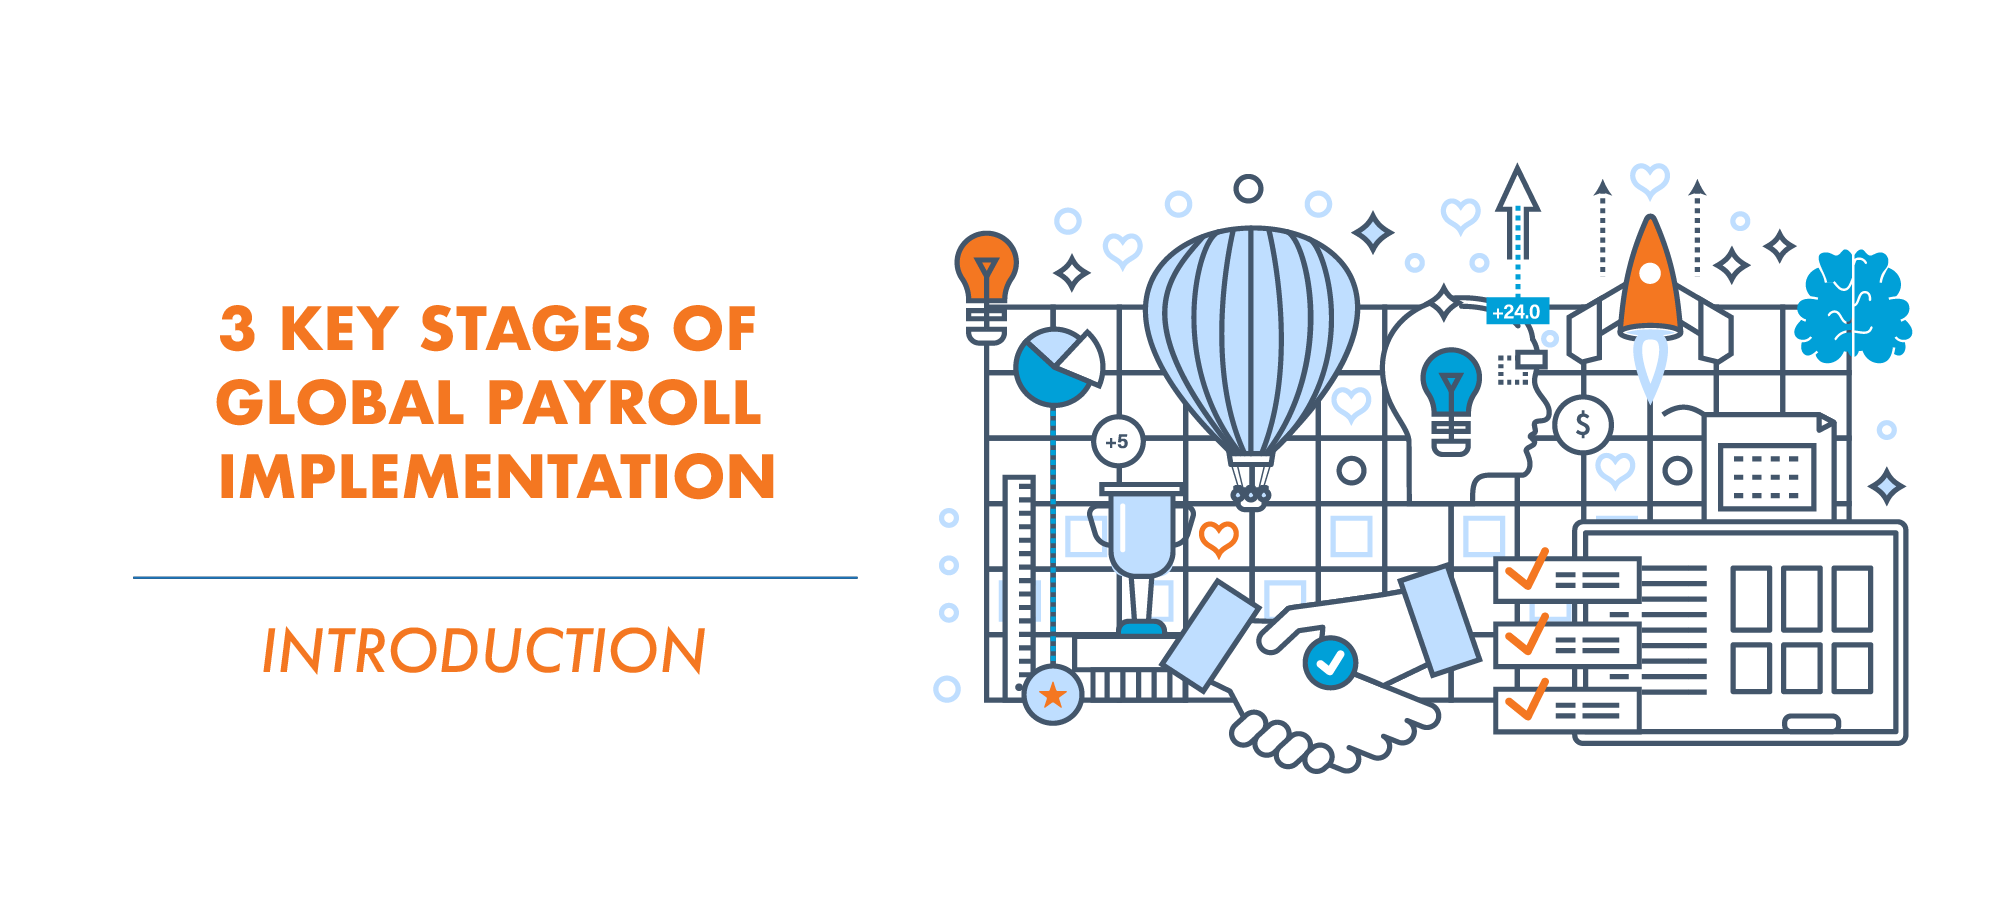 Introducing the 3 Key Stages of Global Payroll Implementation